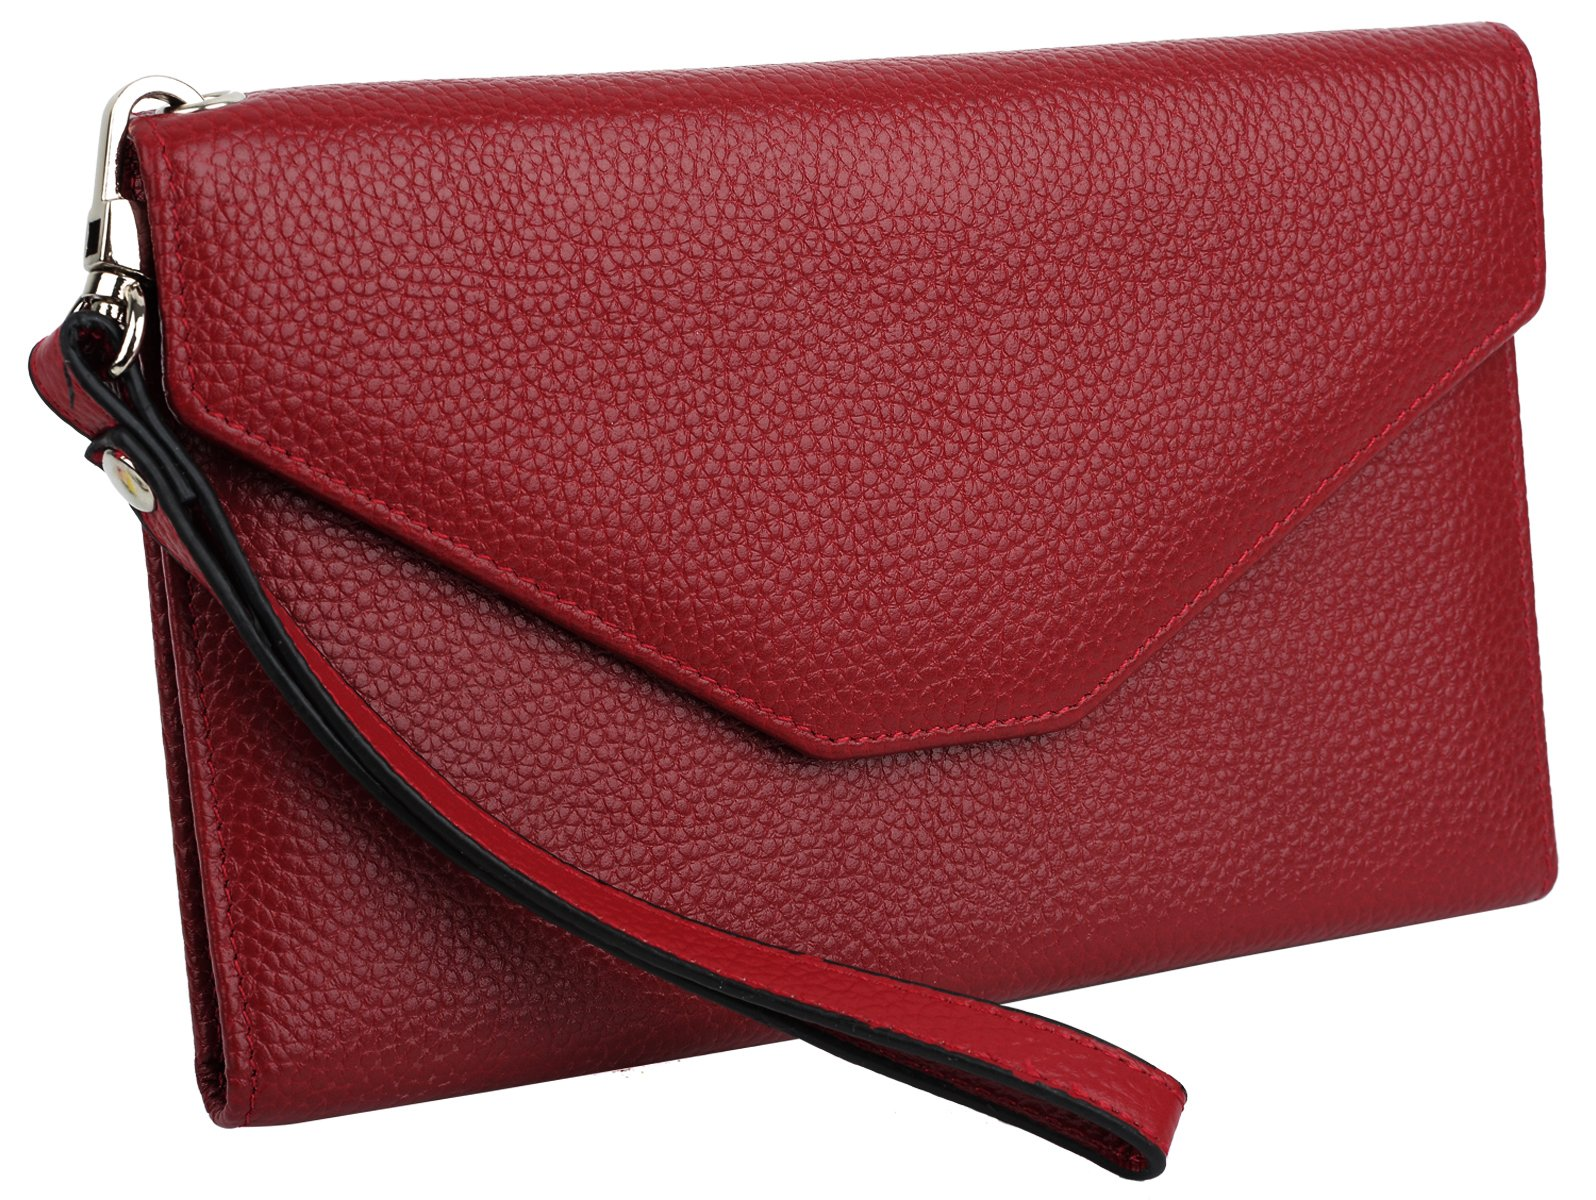 YALUXE Women's RFID Blocking Leather Large Wristlet Clutch Passport Checkbook Wallet Pebbled Red